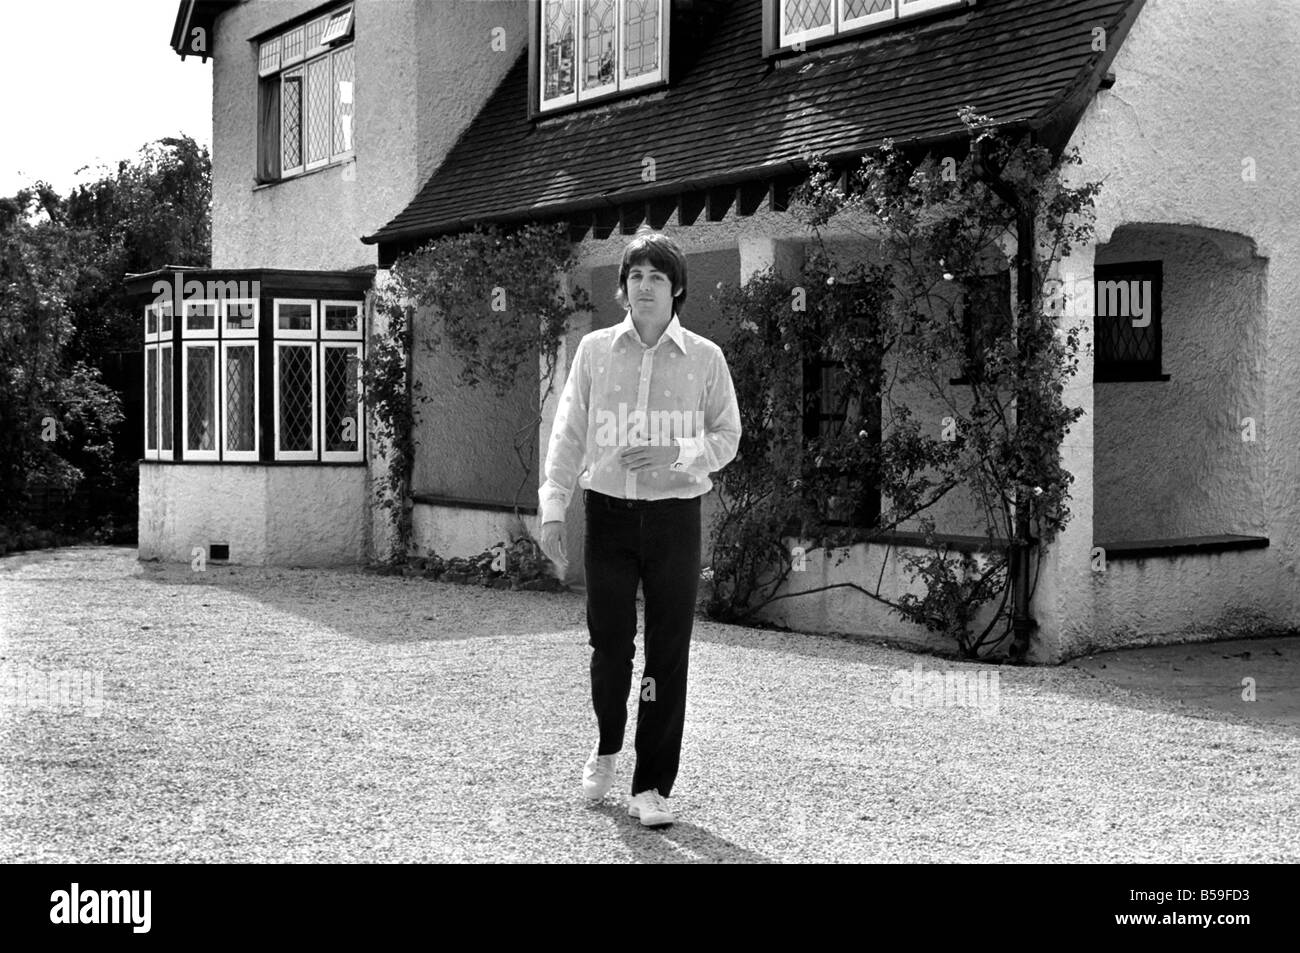 beatles singer paul mccartney relaxing in the grounds of. Black Bedroom Furniture Sets. Home Design Ideas